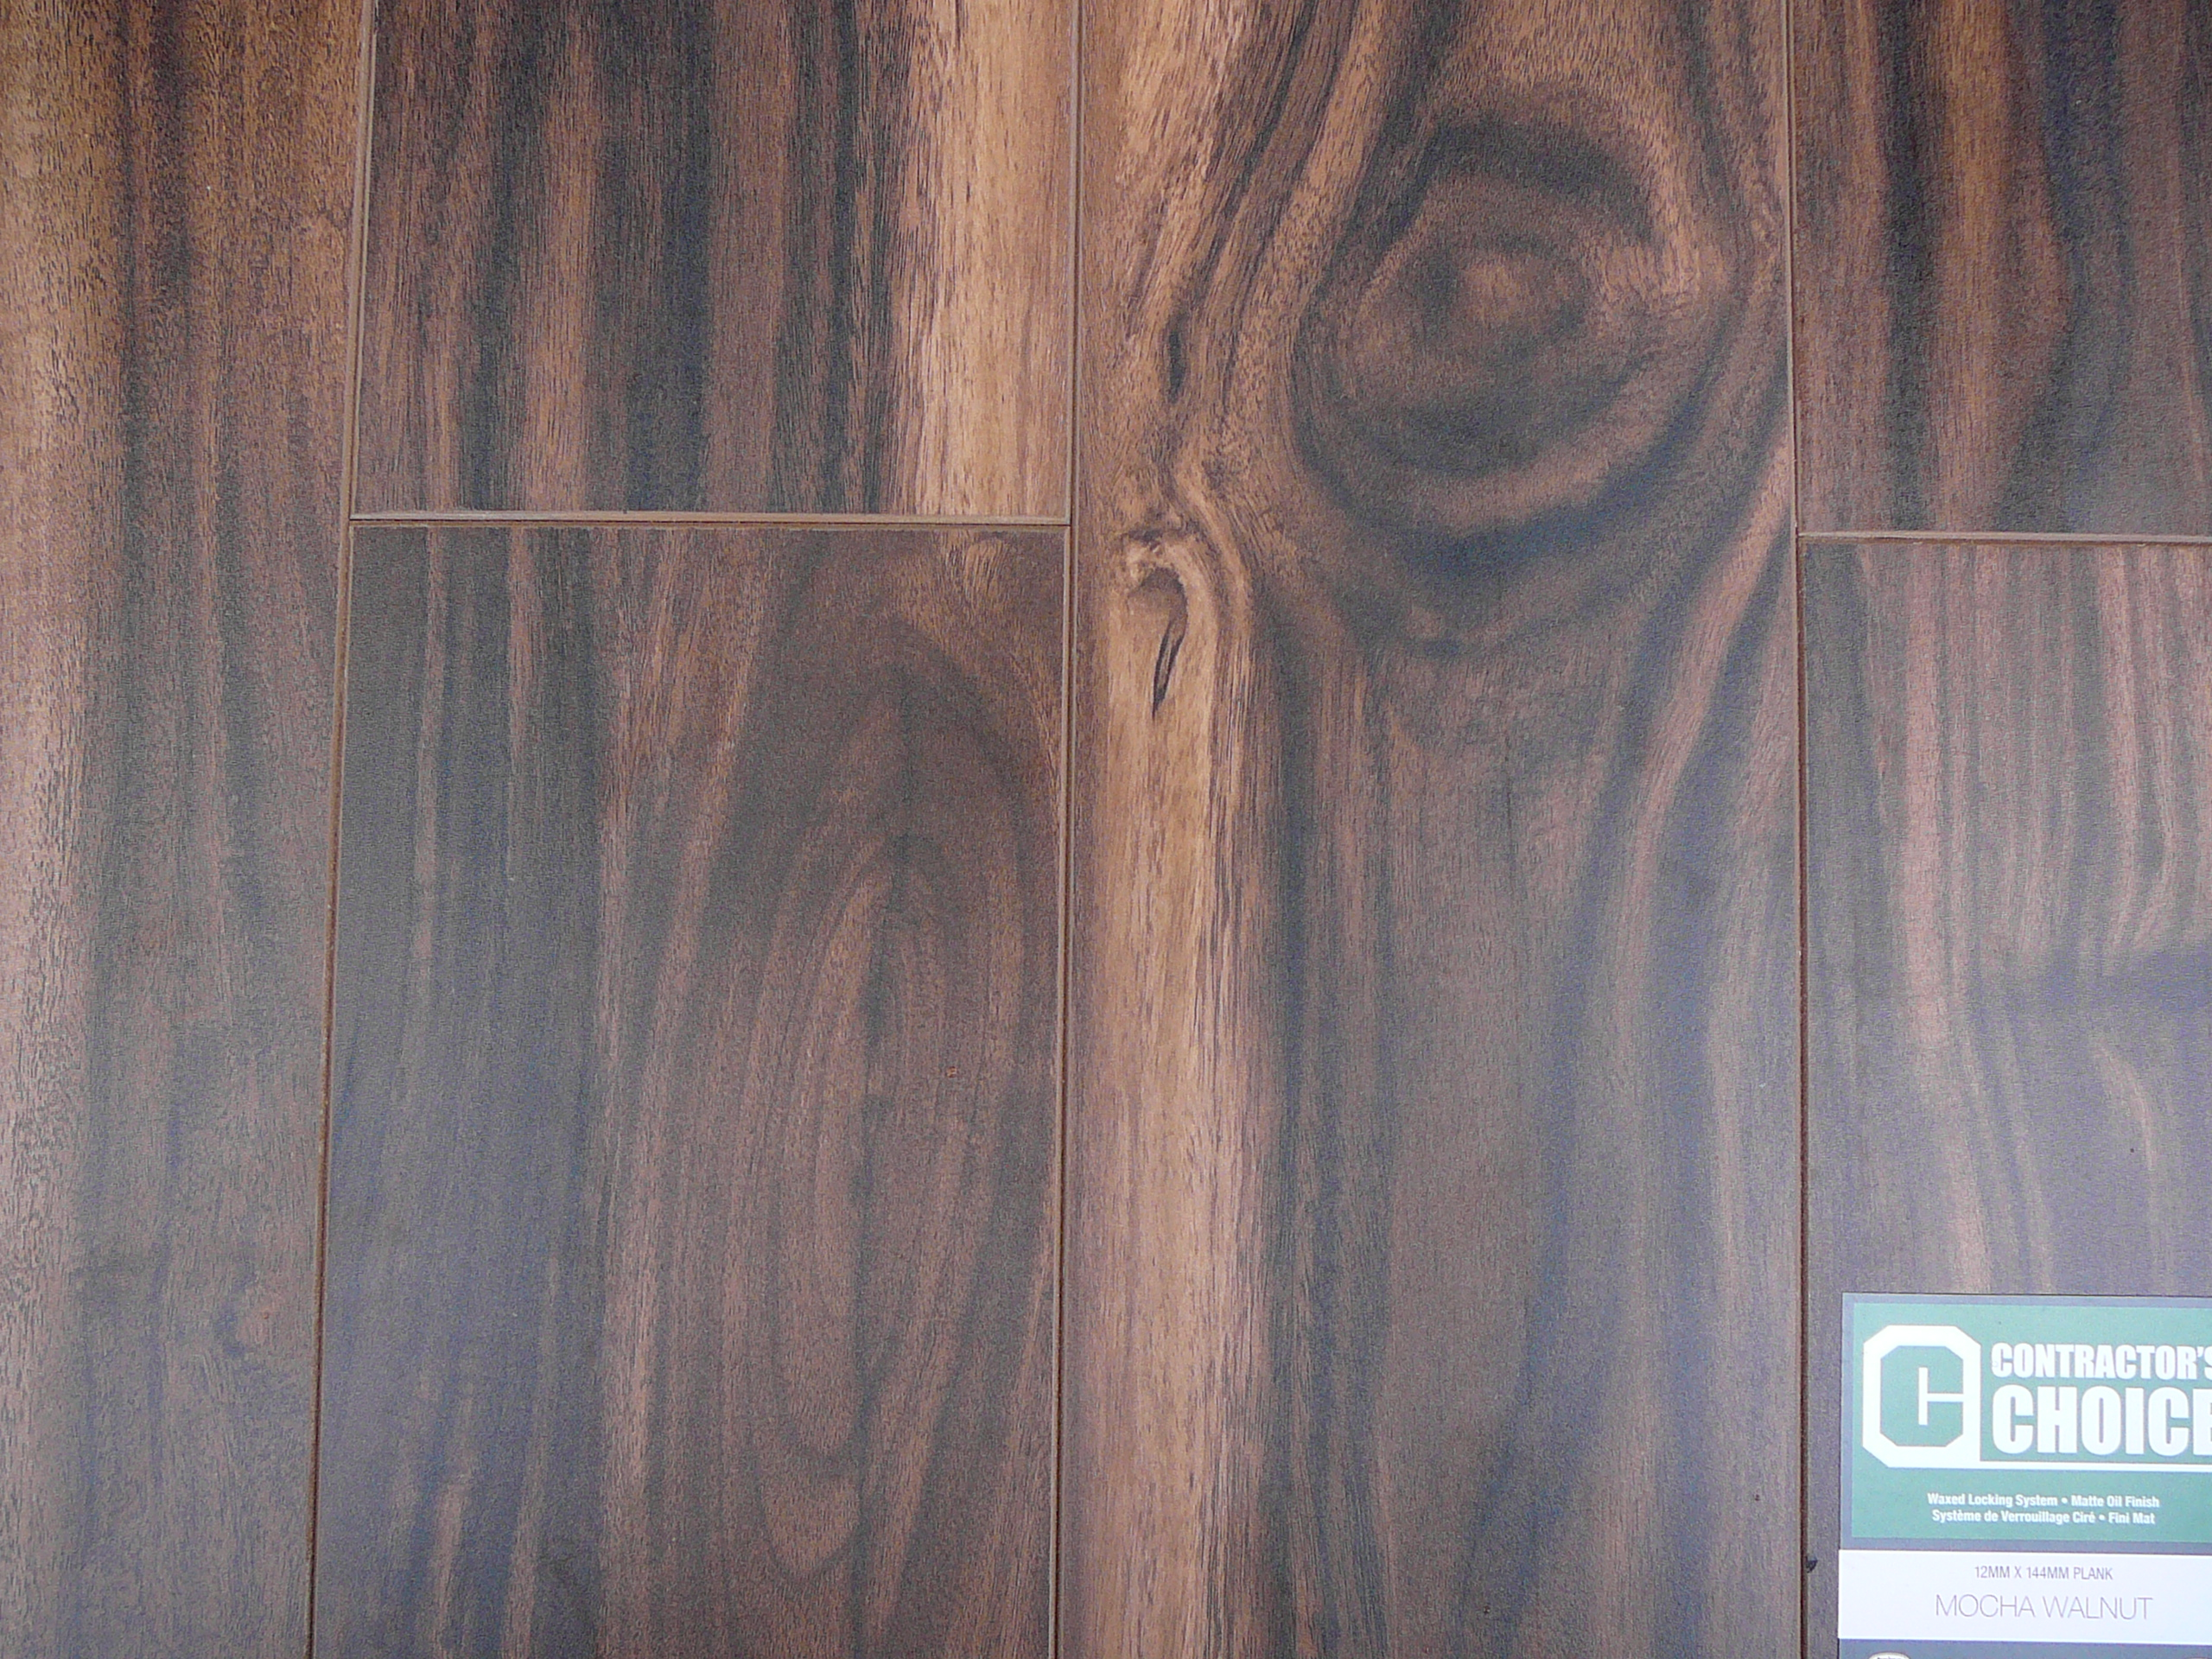 Golden select laminate floors ideakube magz for Golden select flooring dealers